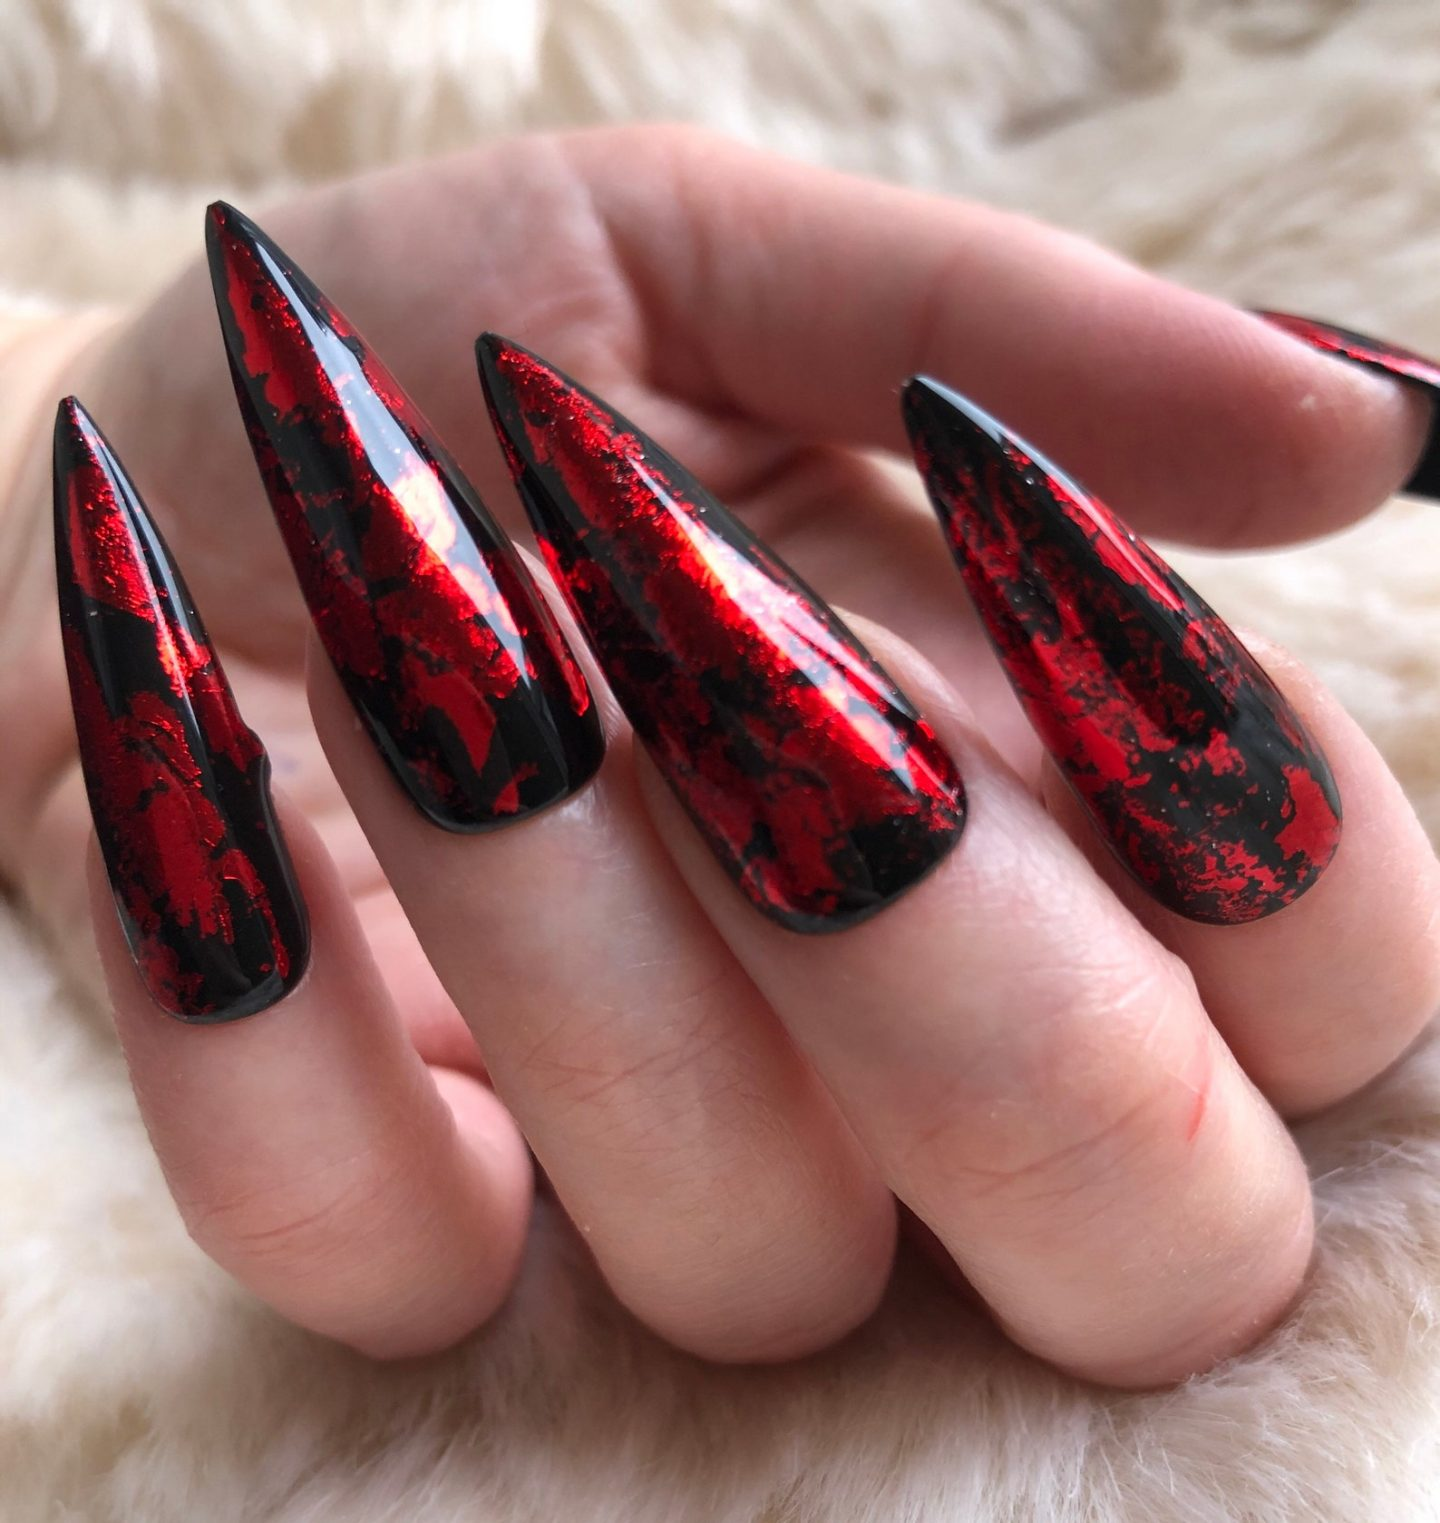 Long black and red Halloween nails in stiletto shape